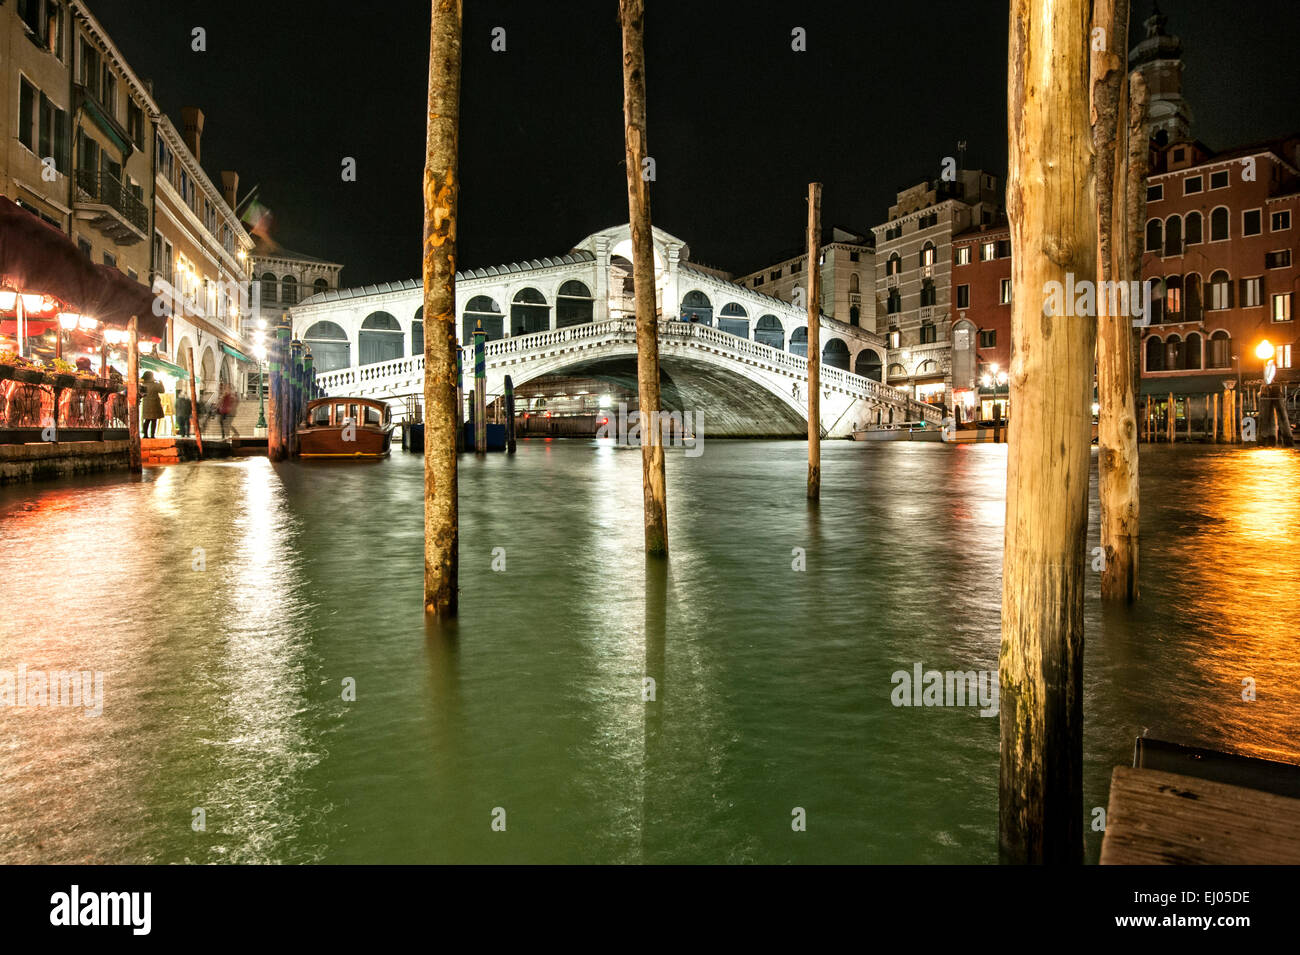 Pier on the Grand Canal at the Rialto Bridge at night. - Stock Image